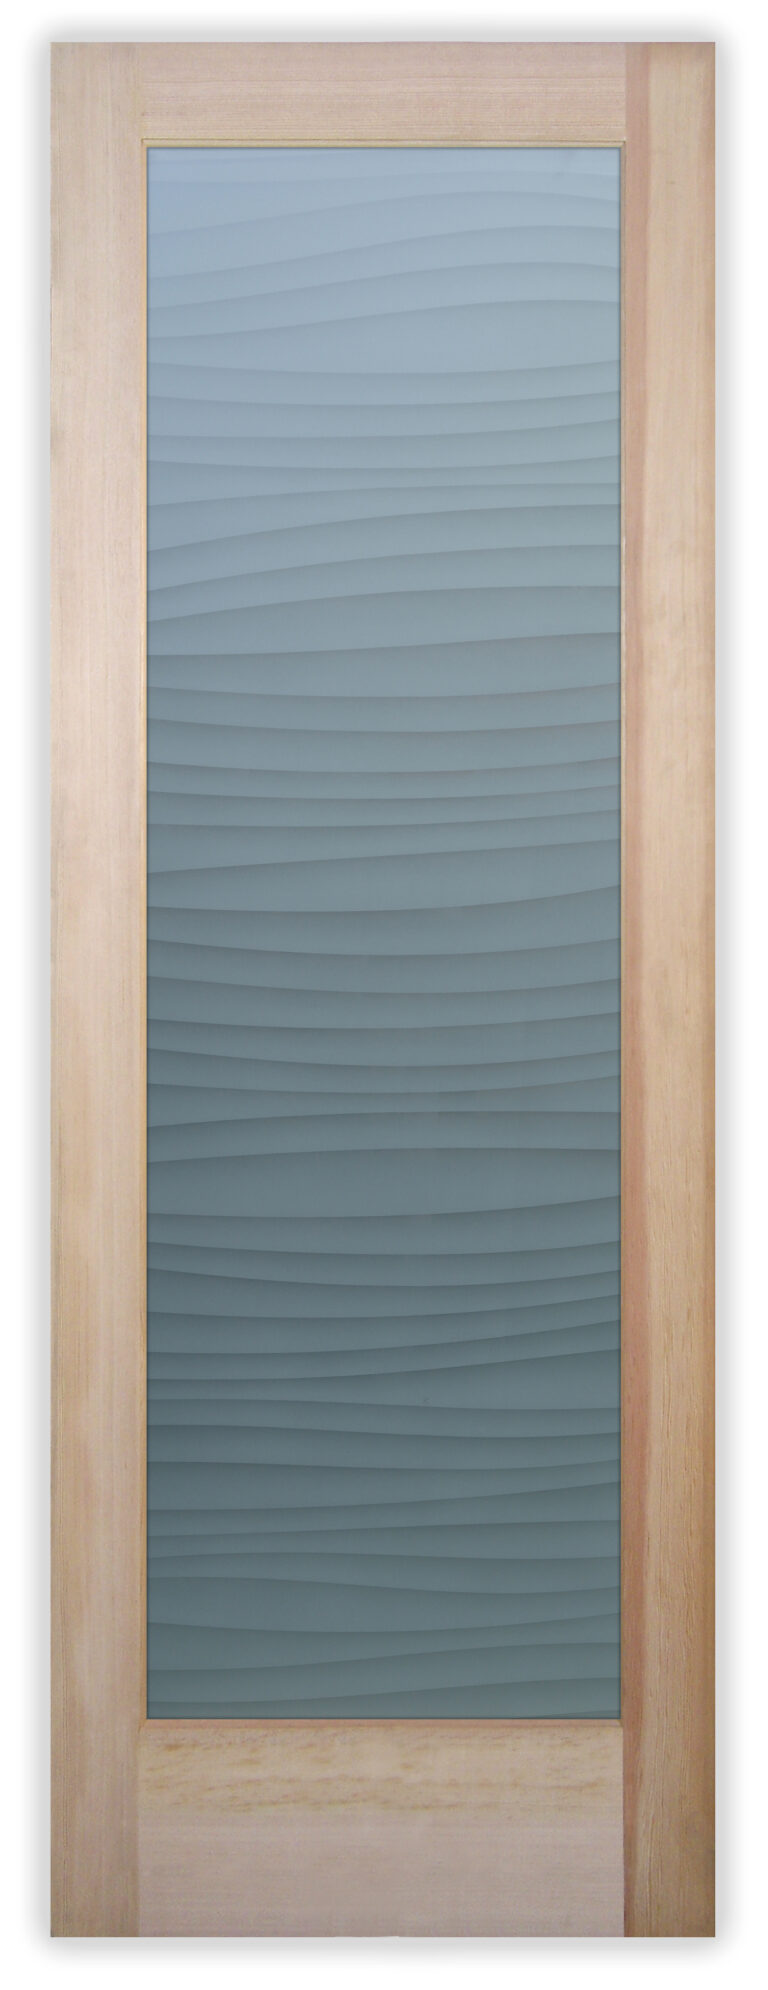 Interior Glass Doors Frosted Etched Glass Sans Soucie